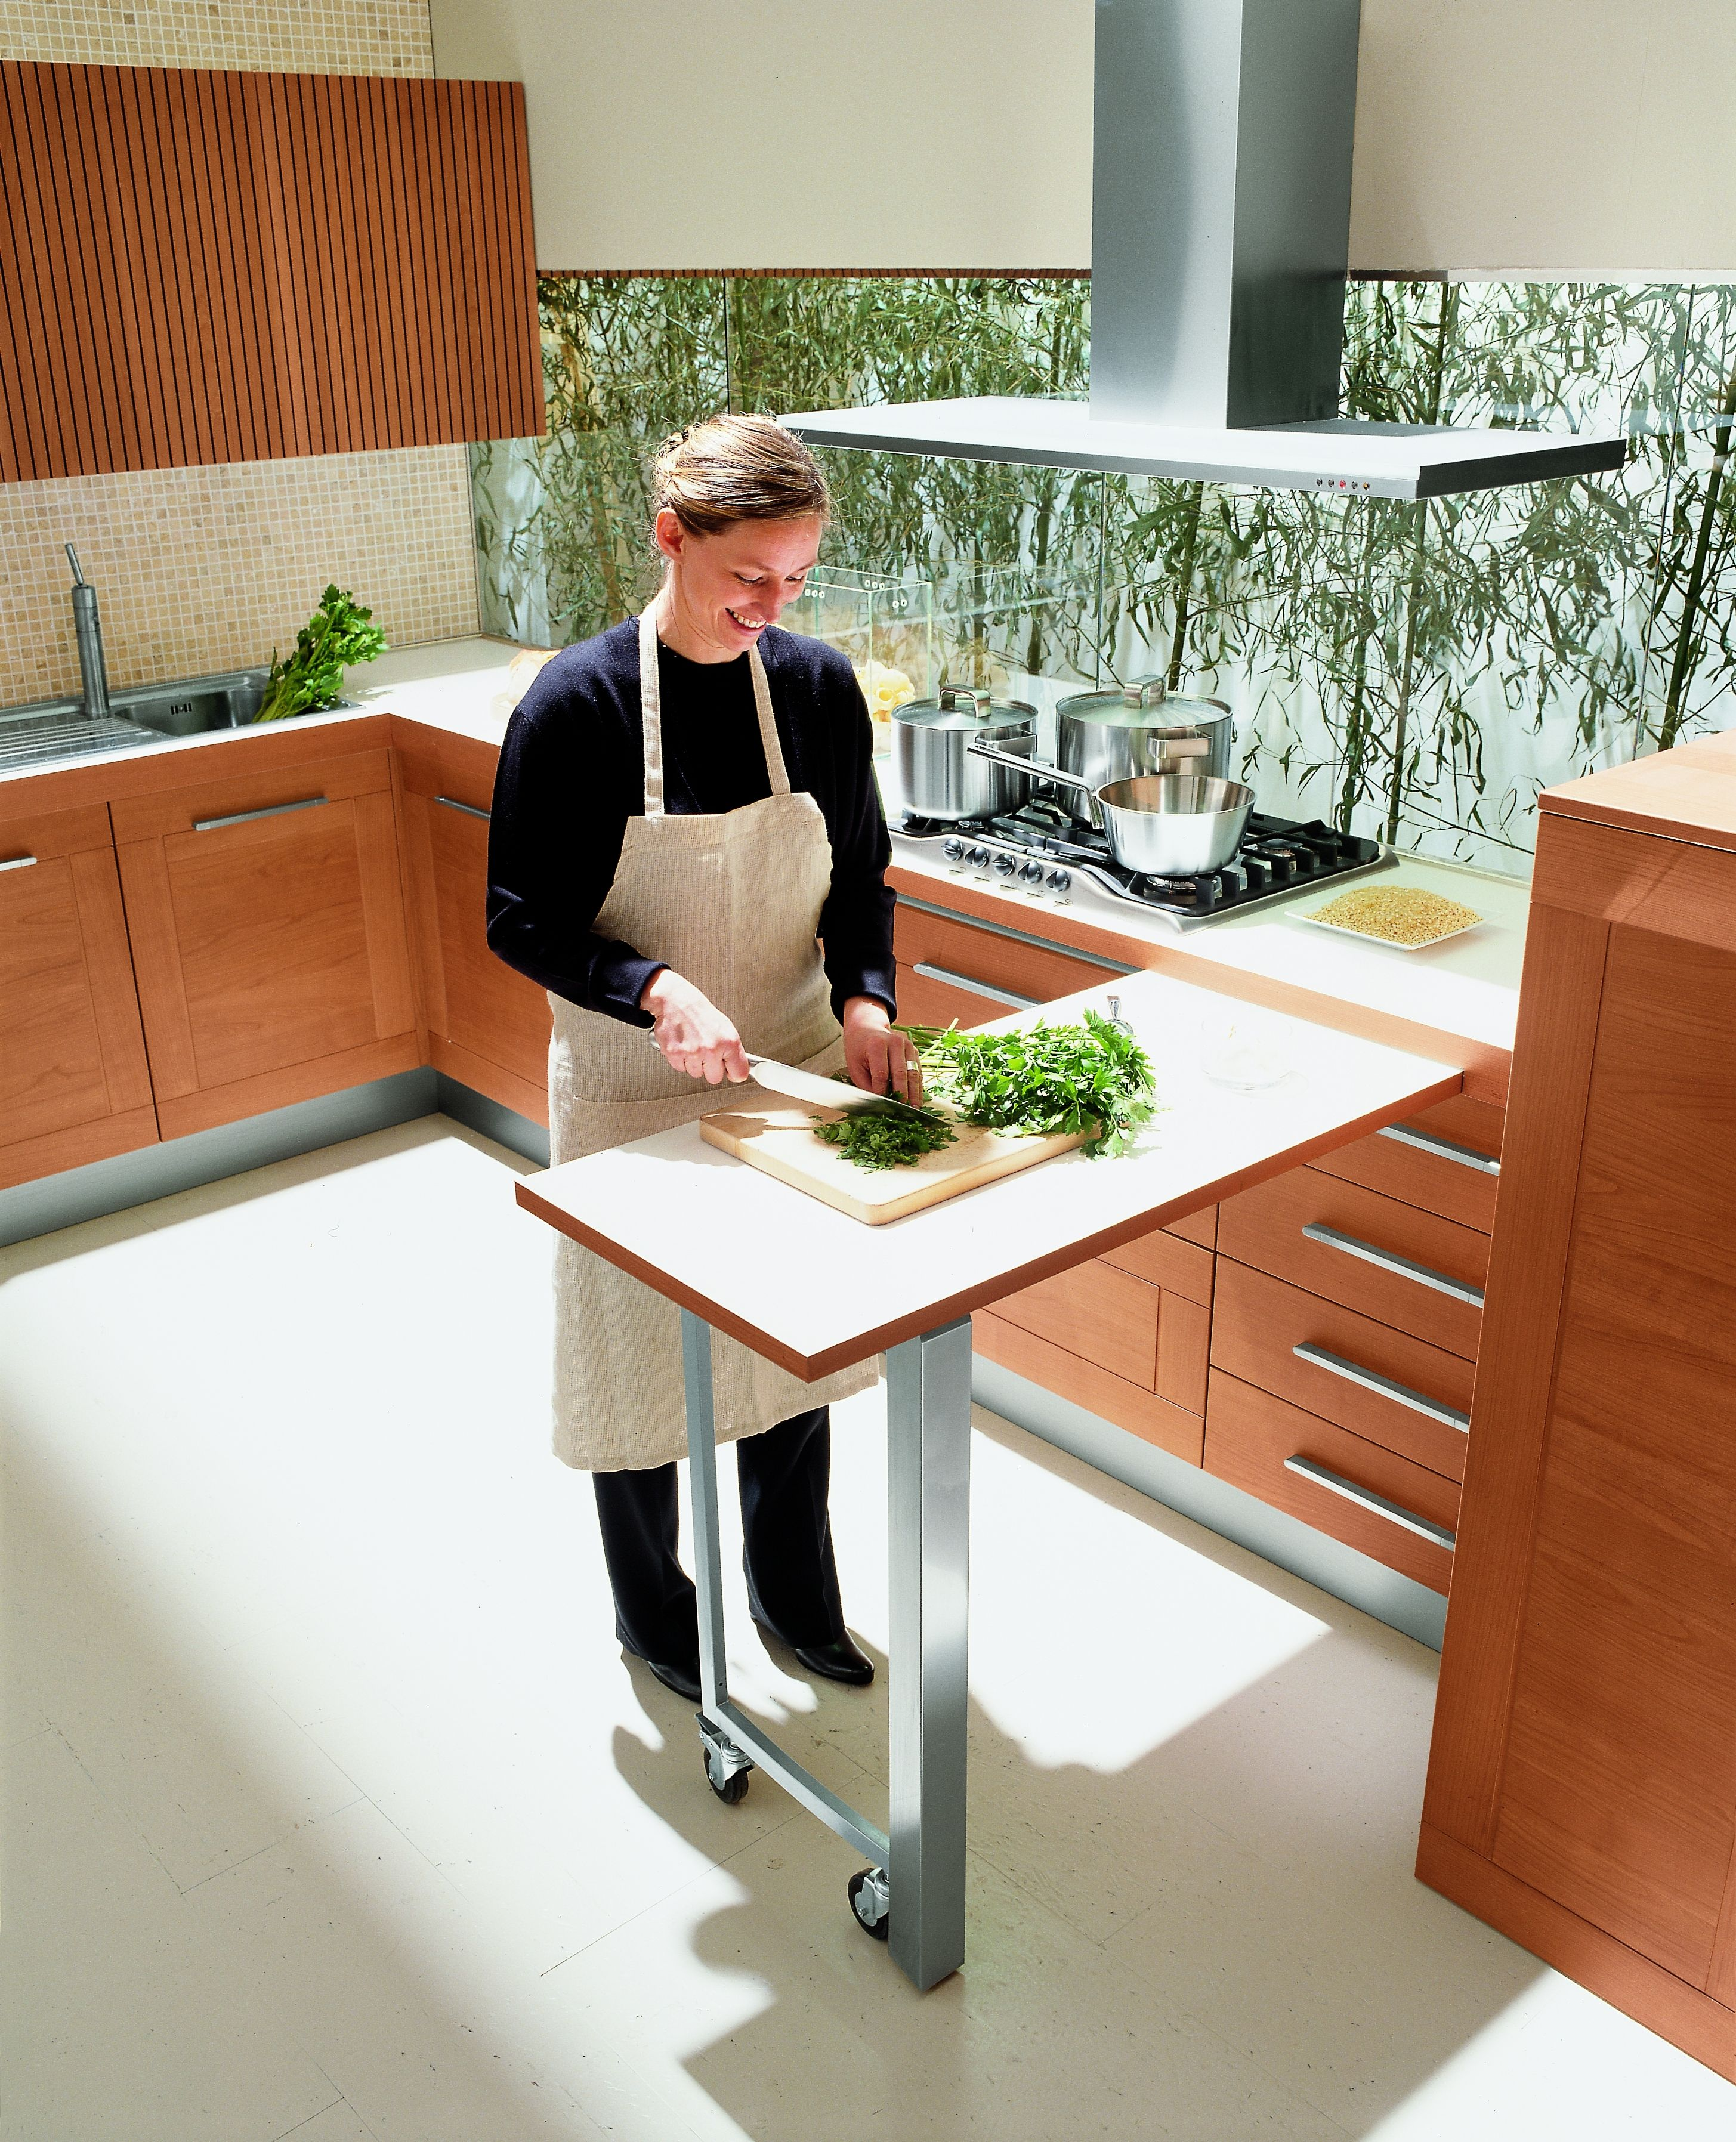 Pull Out Kitchen Work Tables Small Kitchen Kitchen Kitchen Work Tables